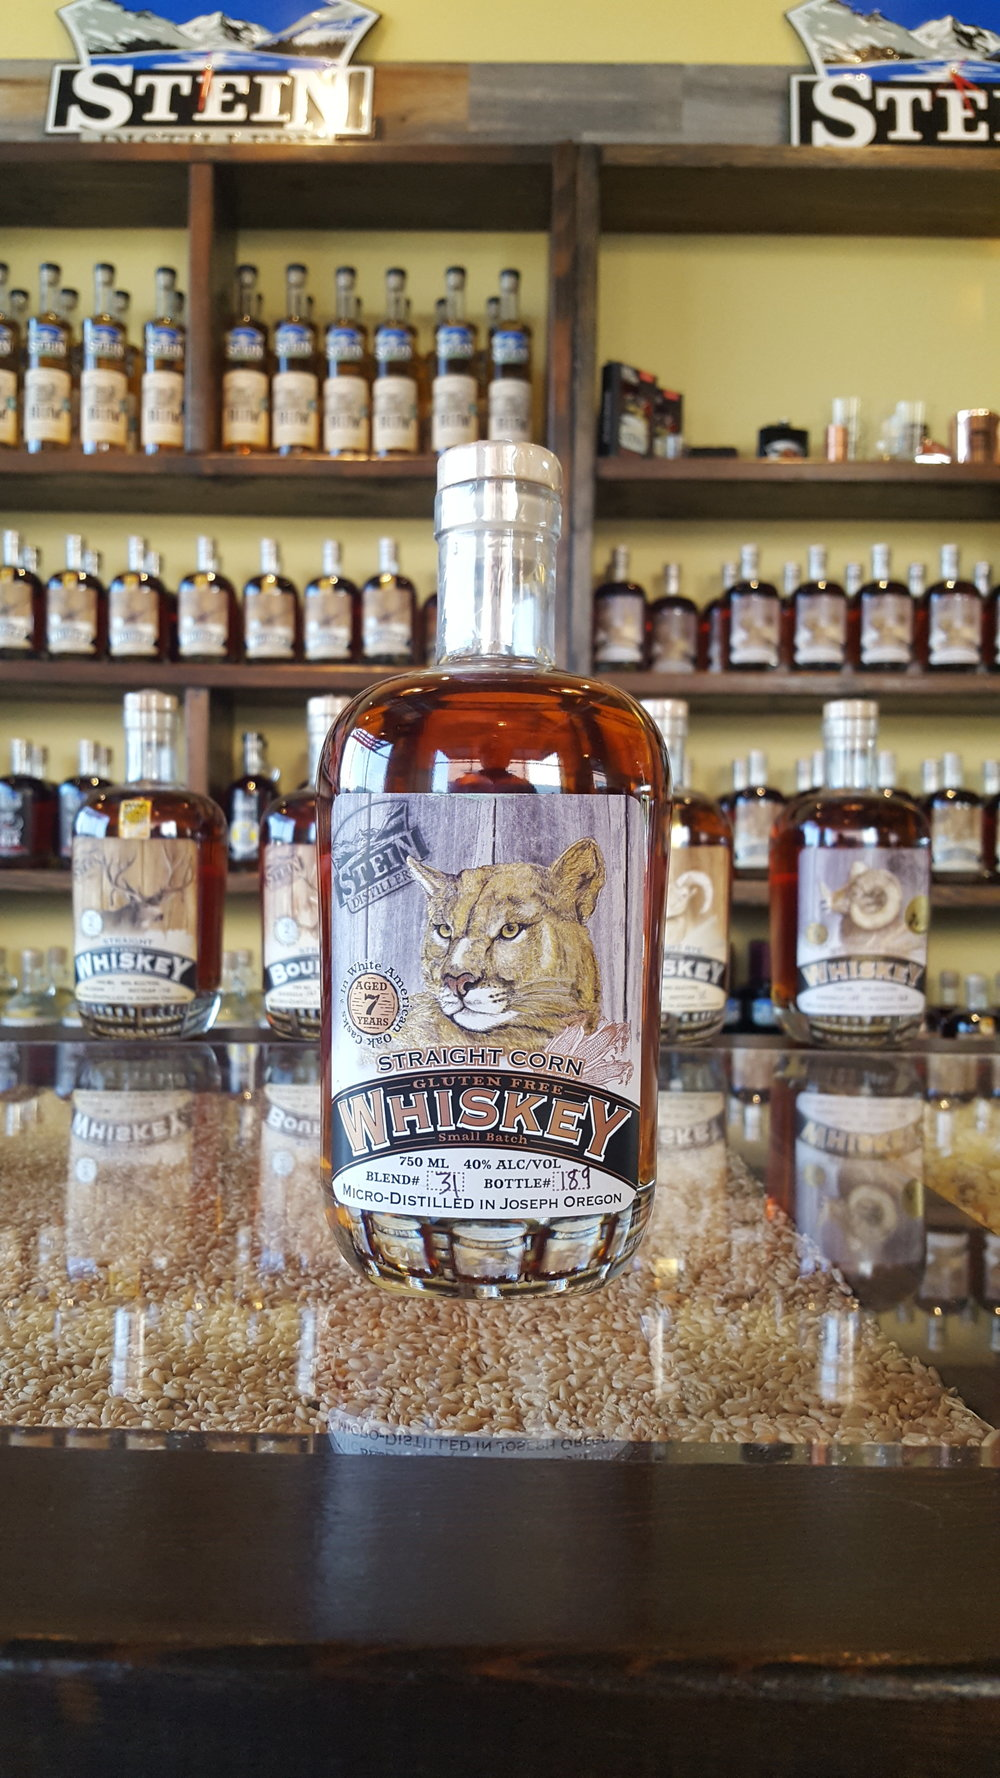 7yr Straight Cougar Corn Whiskey - *Limited Release - Exclusive to the tasting roomsOLCC Code: 4543B